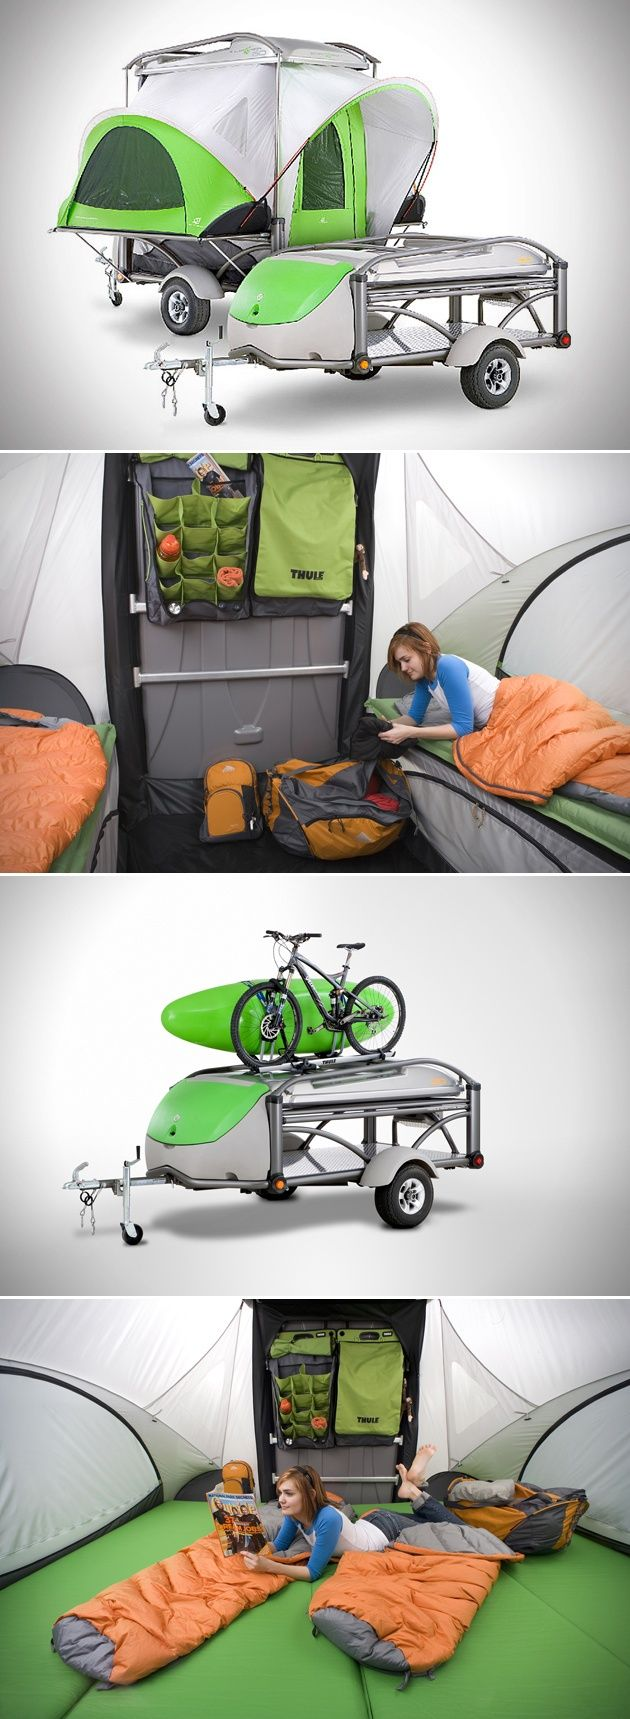 "The COOLEST little thing ever... ""only"" $9400ish as of 7/26/14, but I want... hehe... The Go Camper Trailer from Sylvansport: http://go.sylvansport.com"